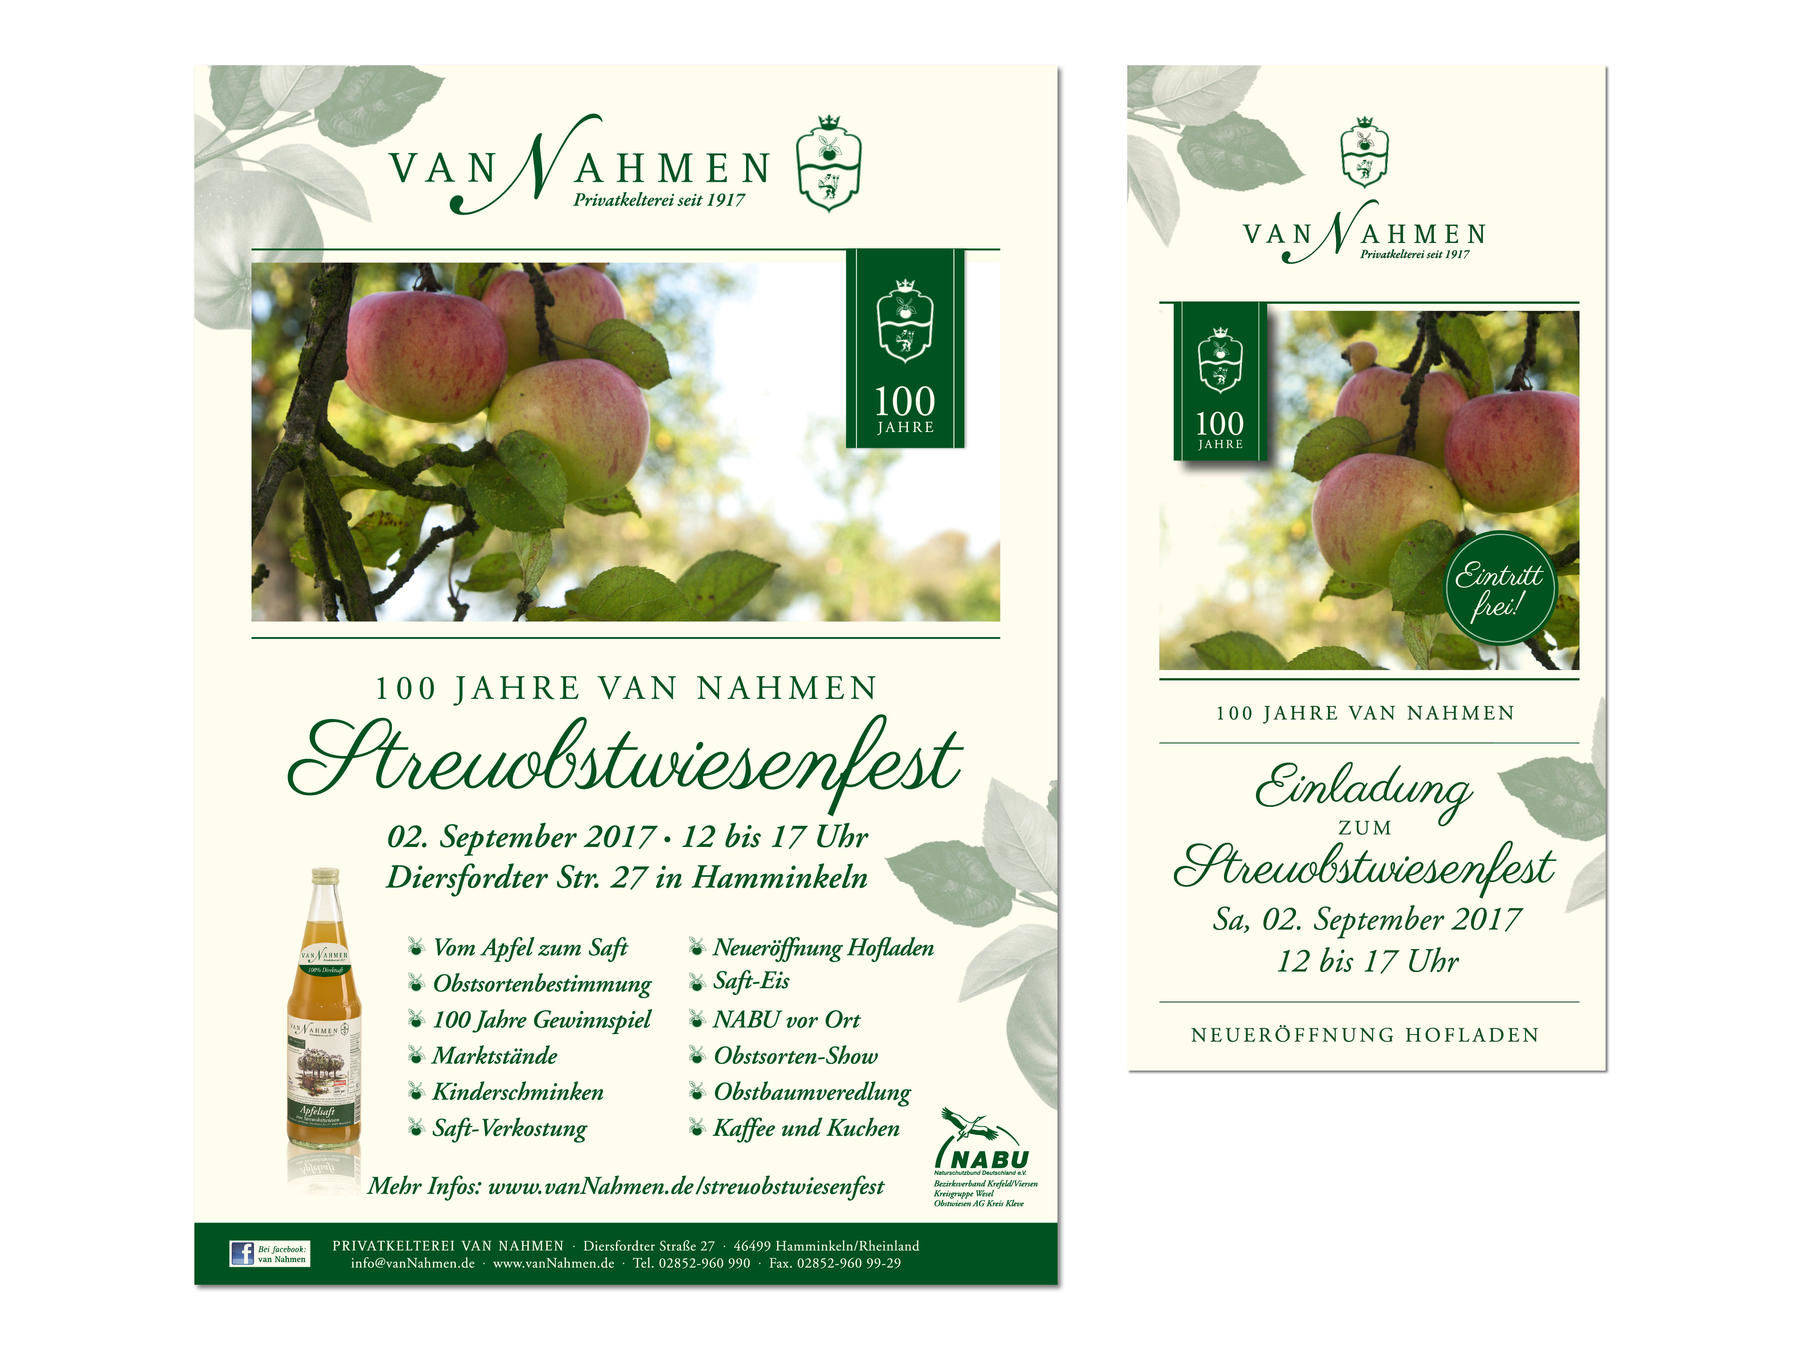 van Nahmen Obstsäfte, Streuobstwiesenfest, Plakat, Flyer, Corporate Design